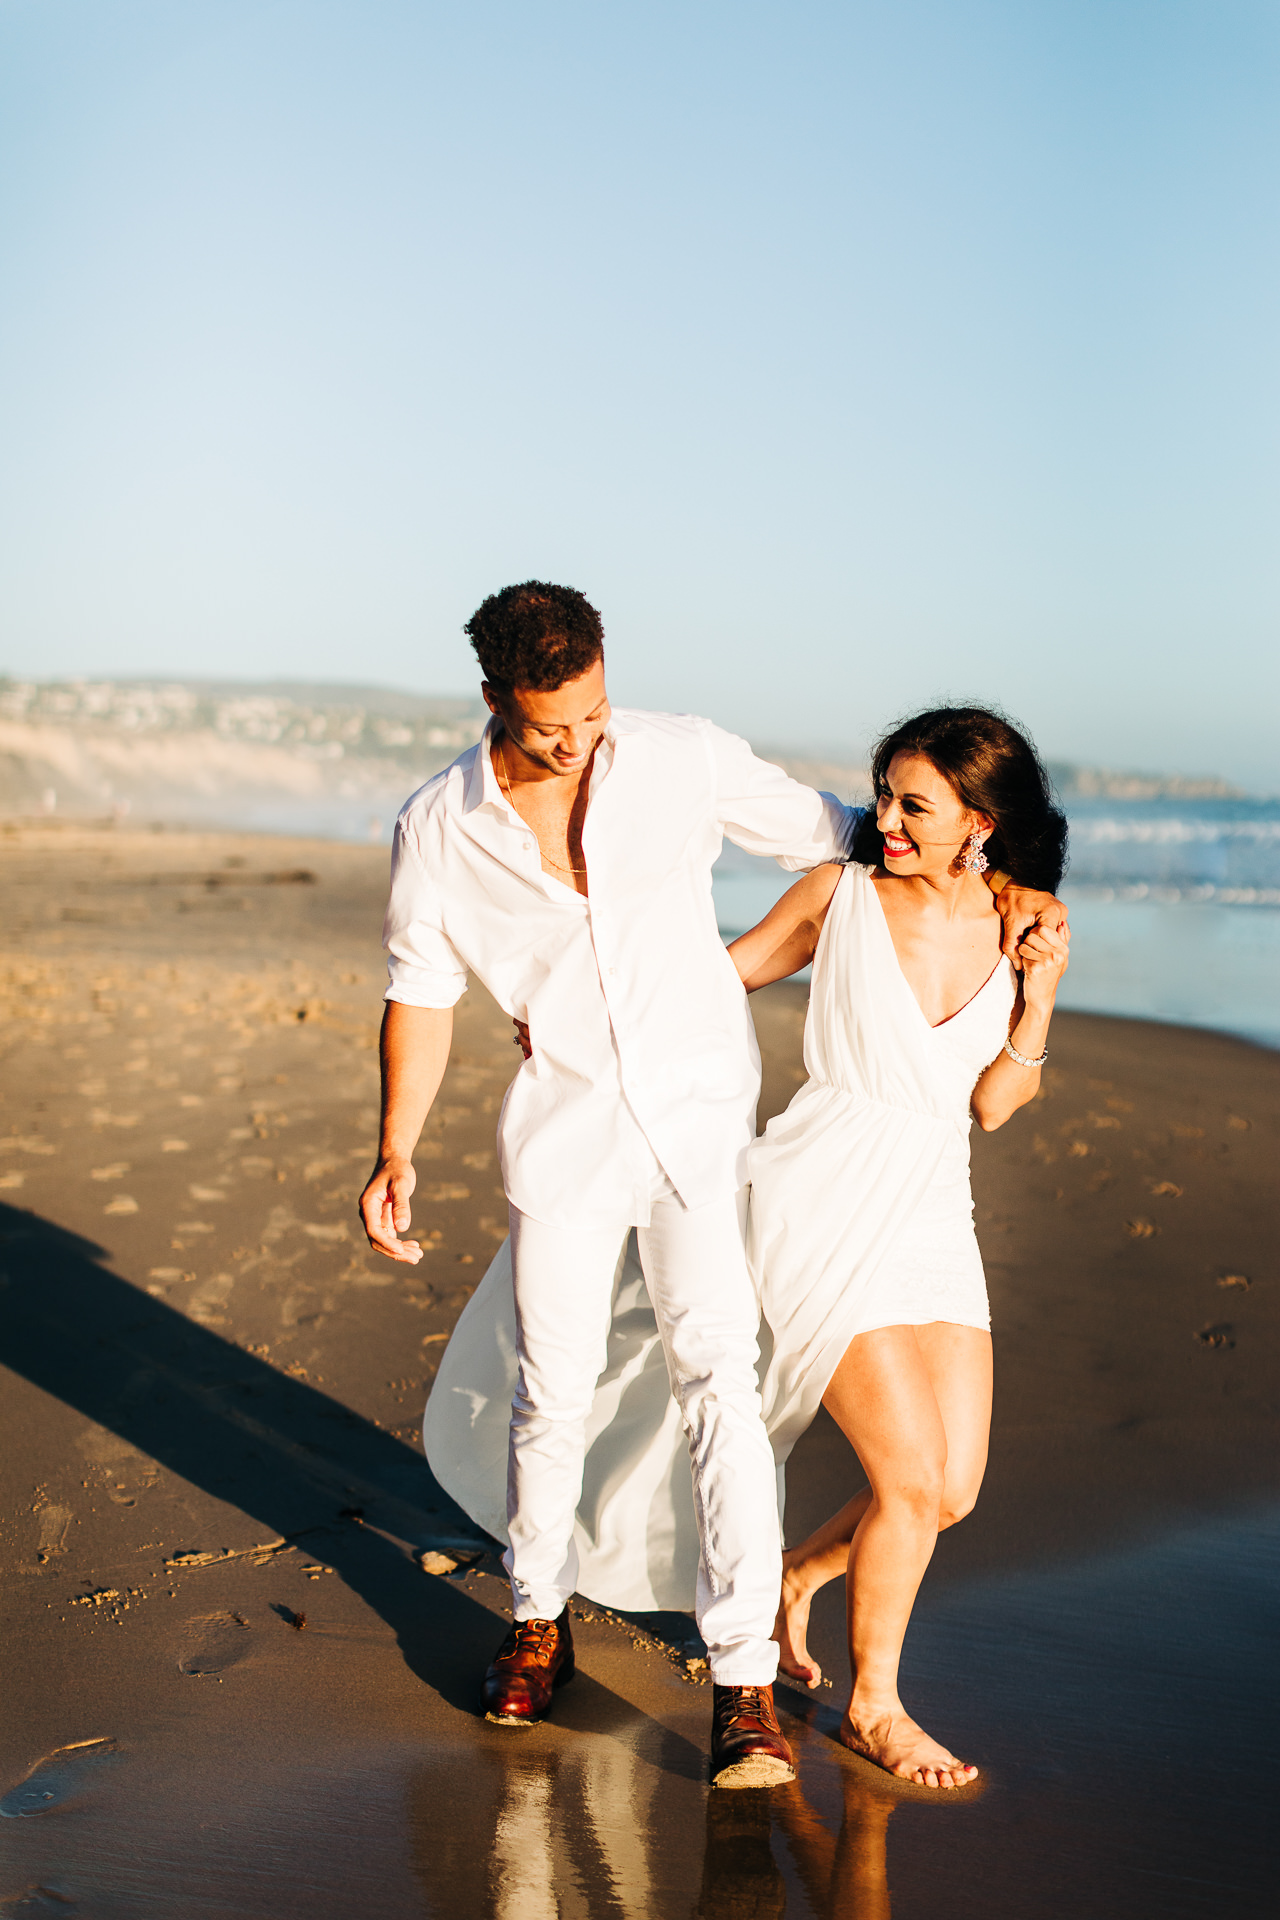 Nanis&Jay-Crystal-Cove-Beach-Engagement-Session-Clarisse-Rae-Photo-&-Video-Orange-County-Wedding-Photographer-&-Videographer_24